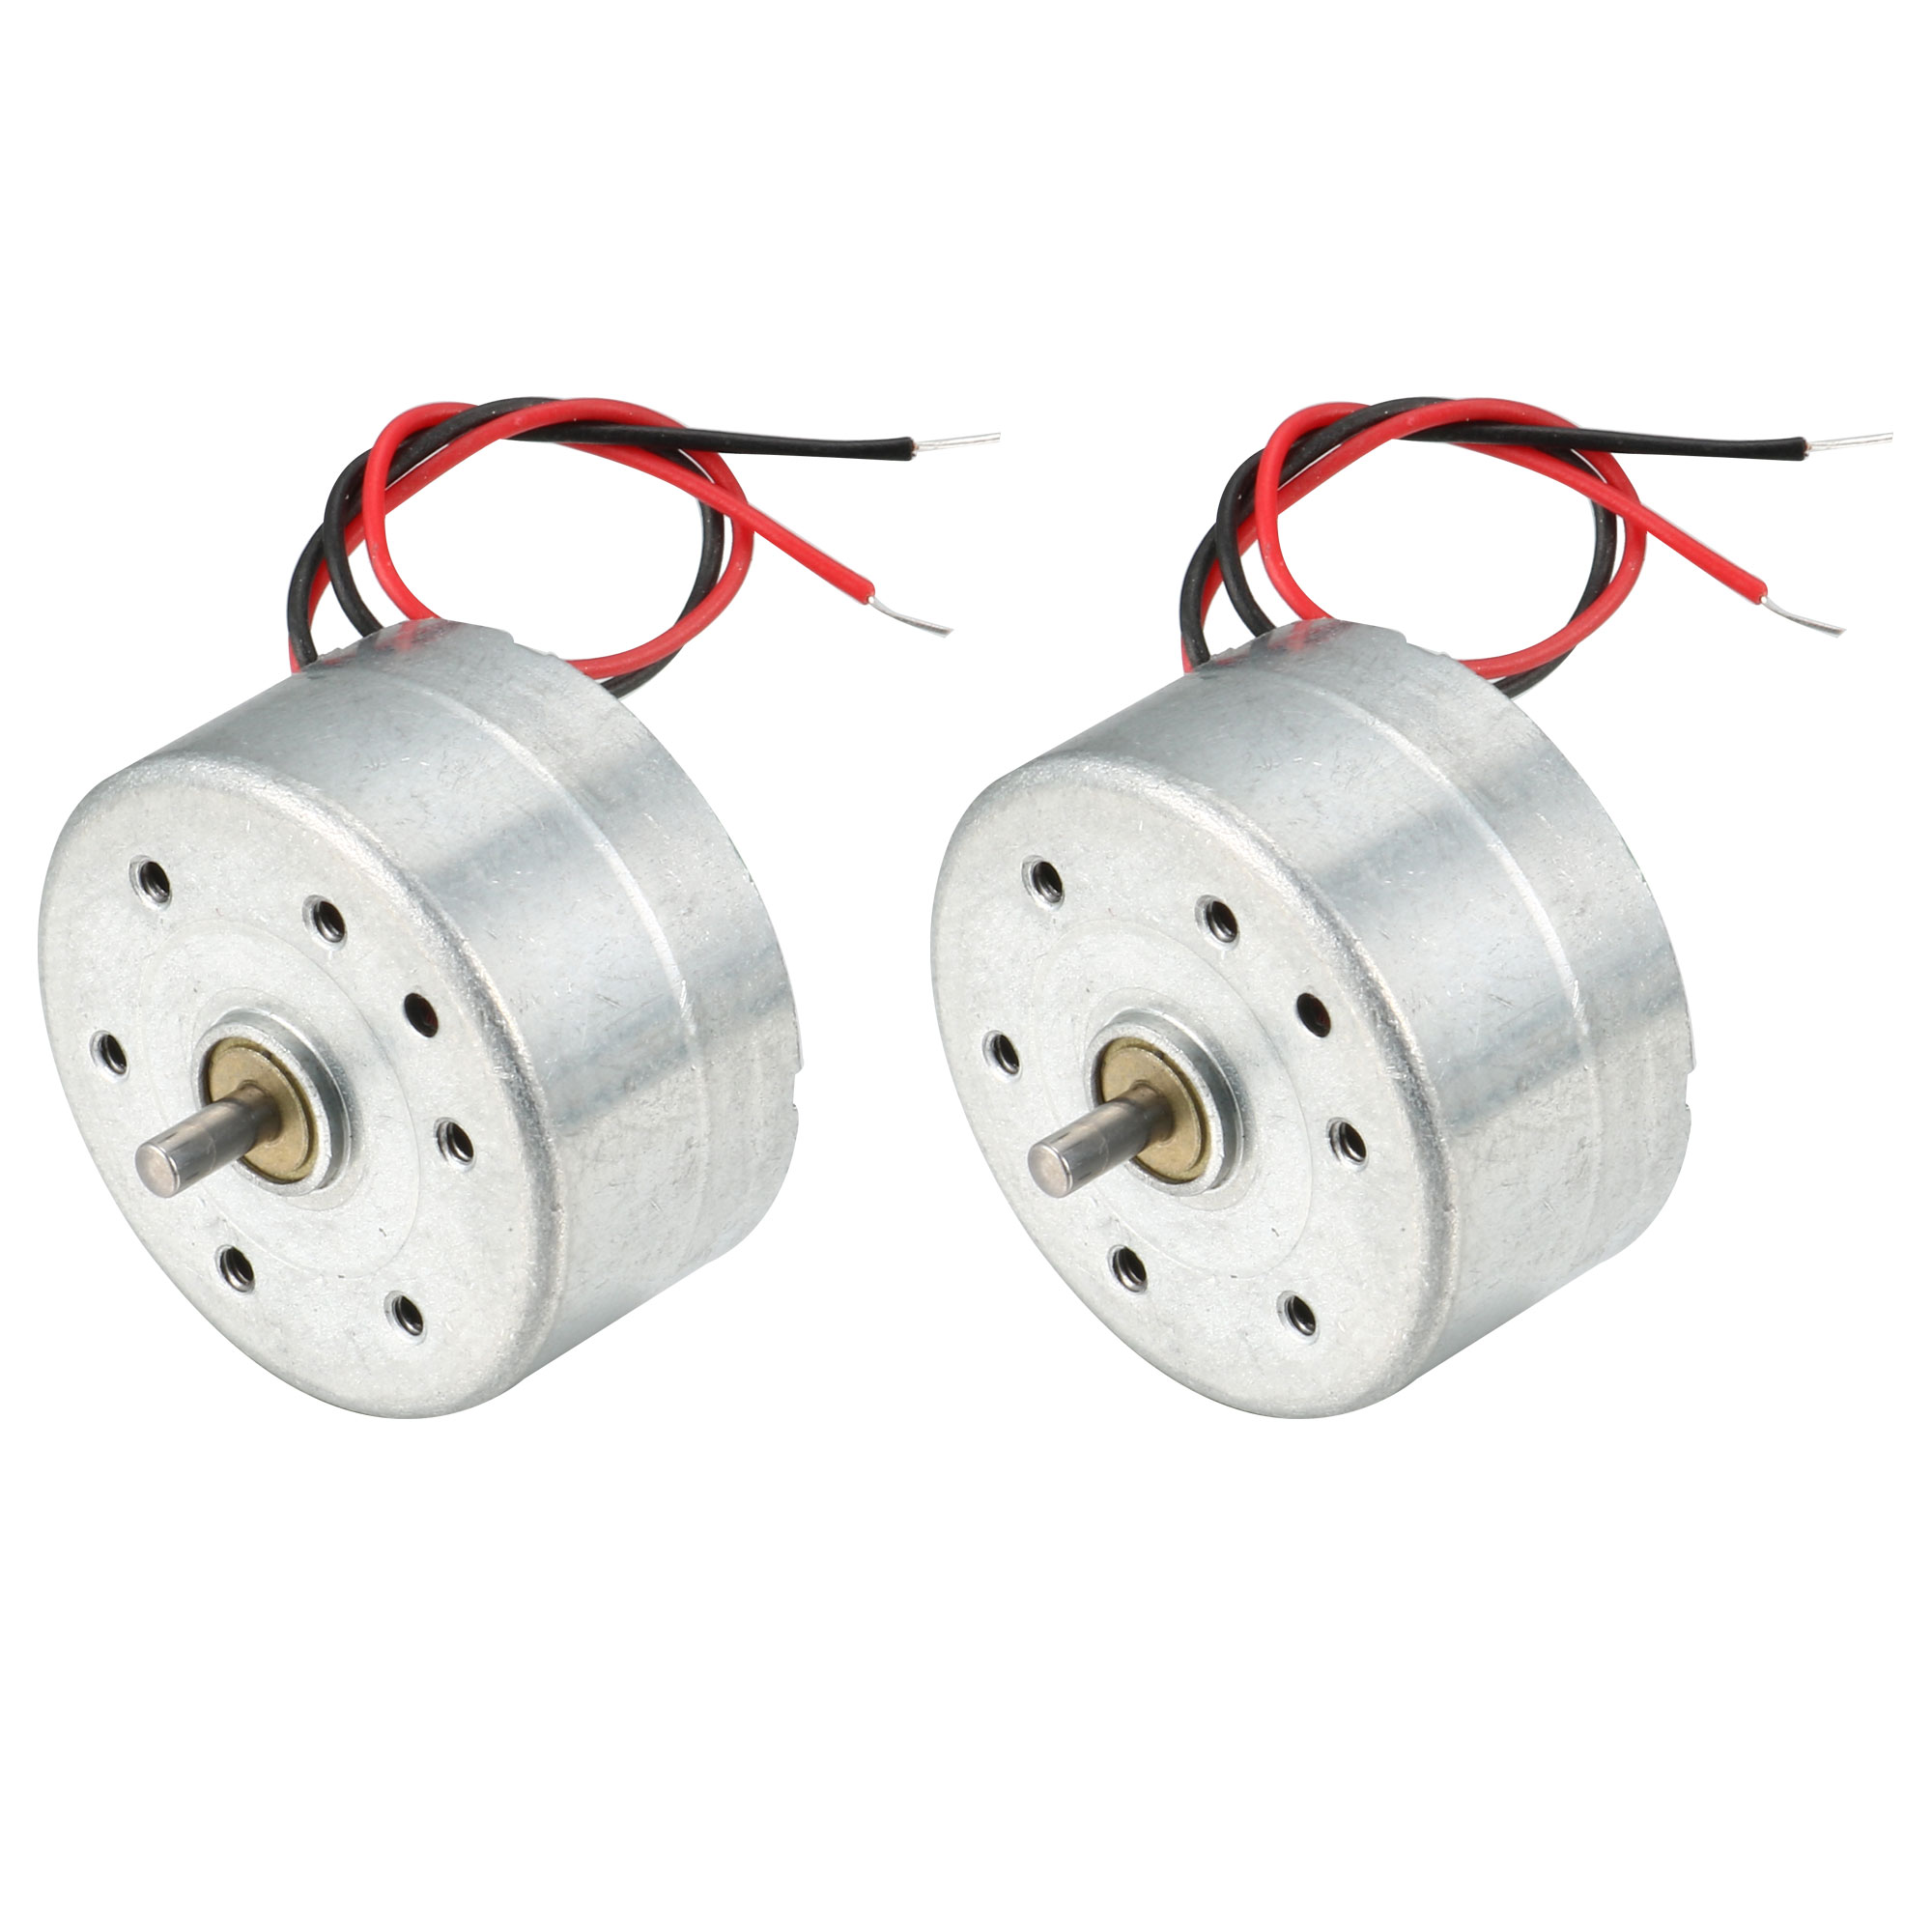 2PCS RC300-FT-08800 6000RPM DC 1.5-9V Micro Motor for CD Player